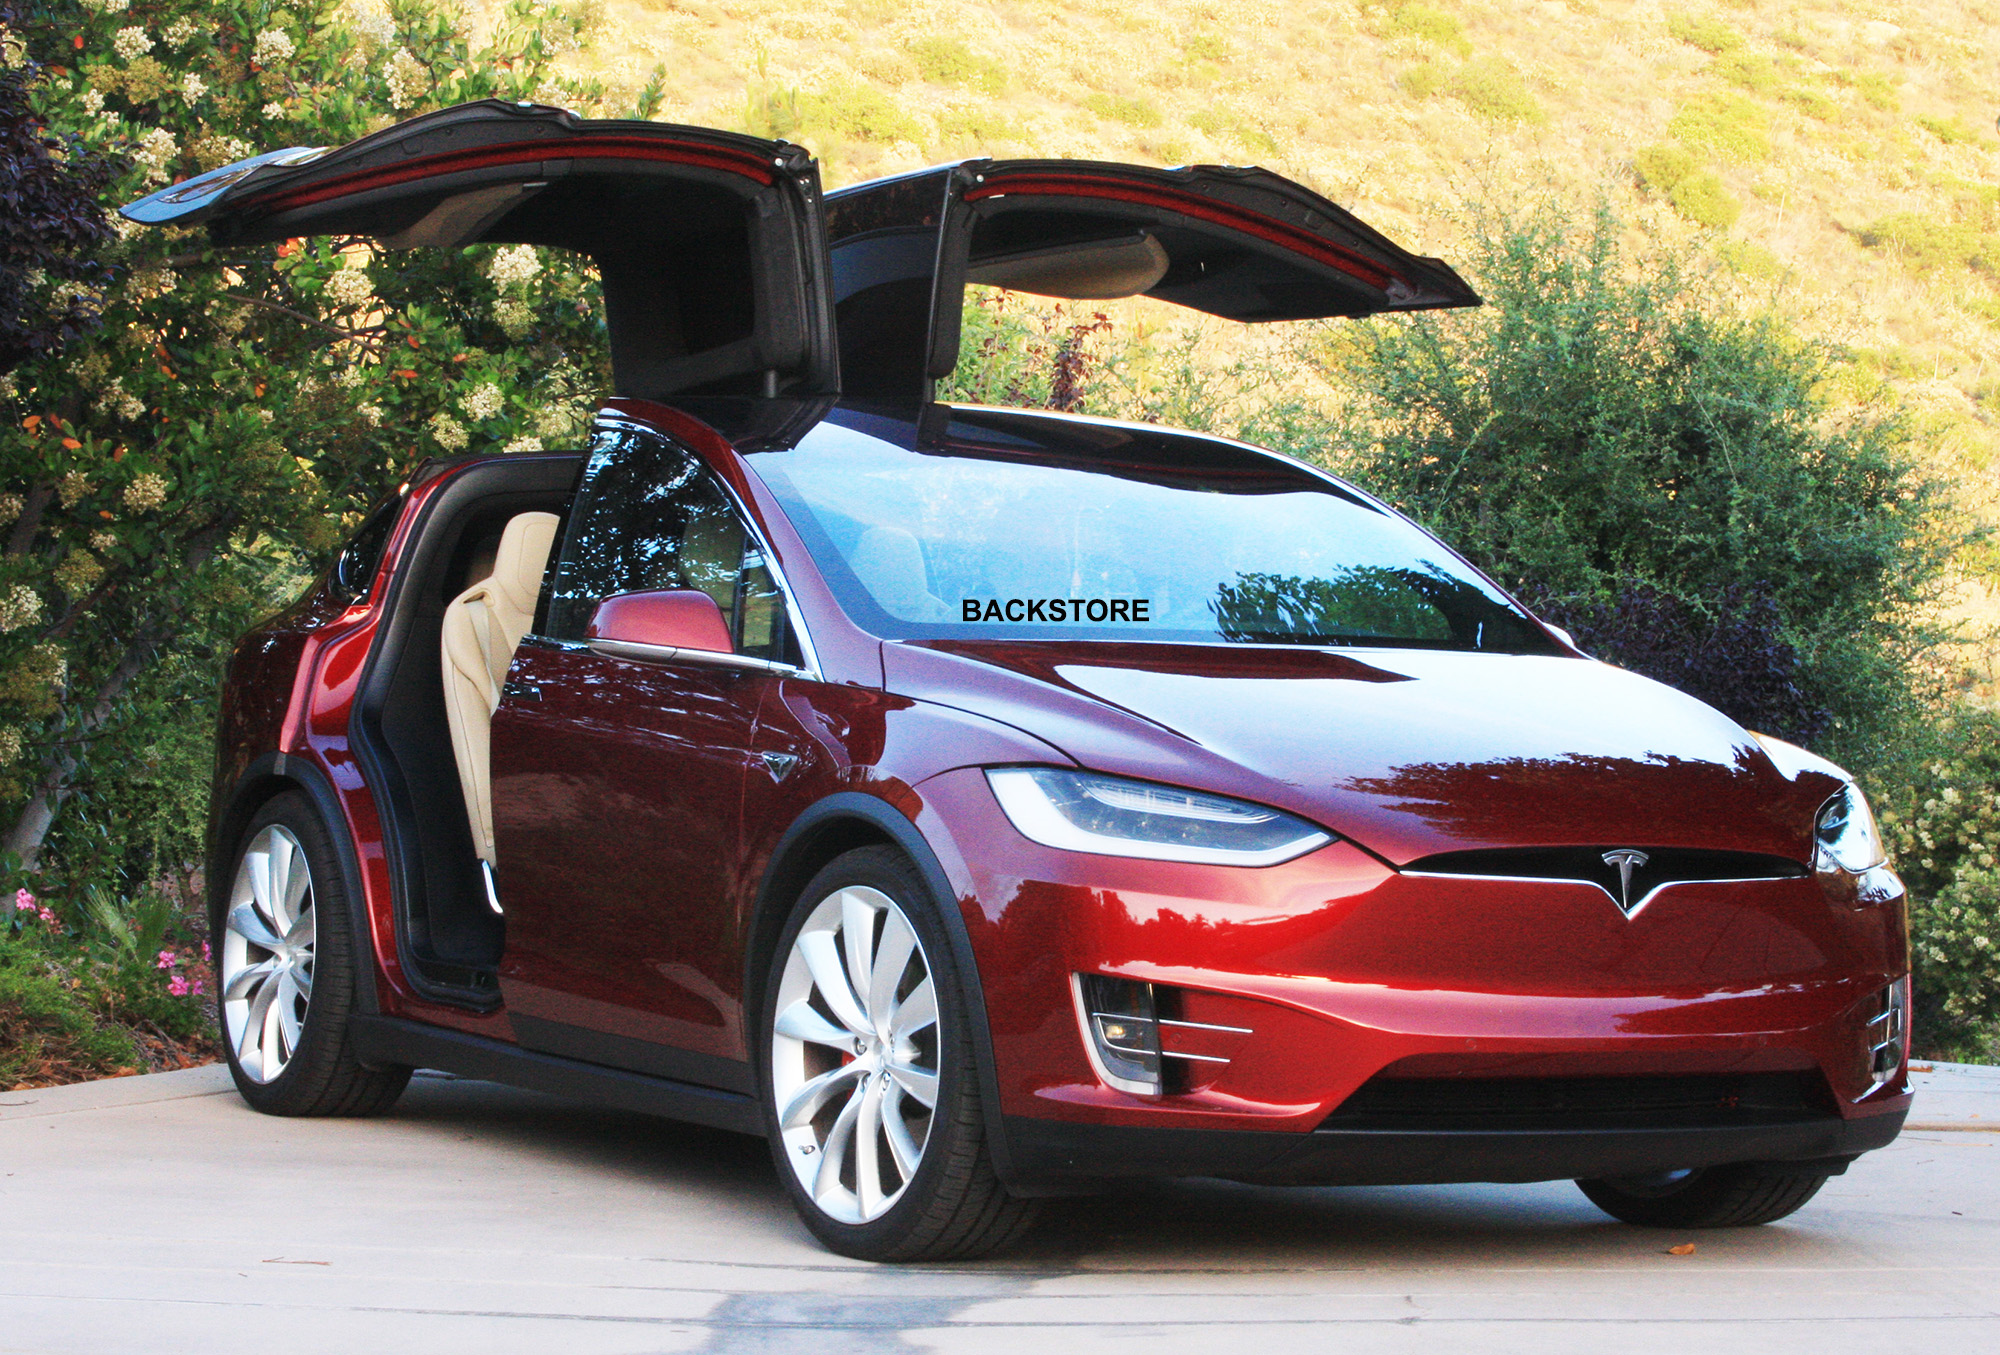 2016 Tesla Model X P90DL Founders Edition - Signature Red